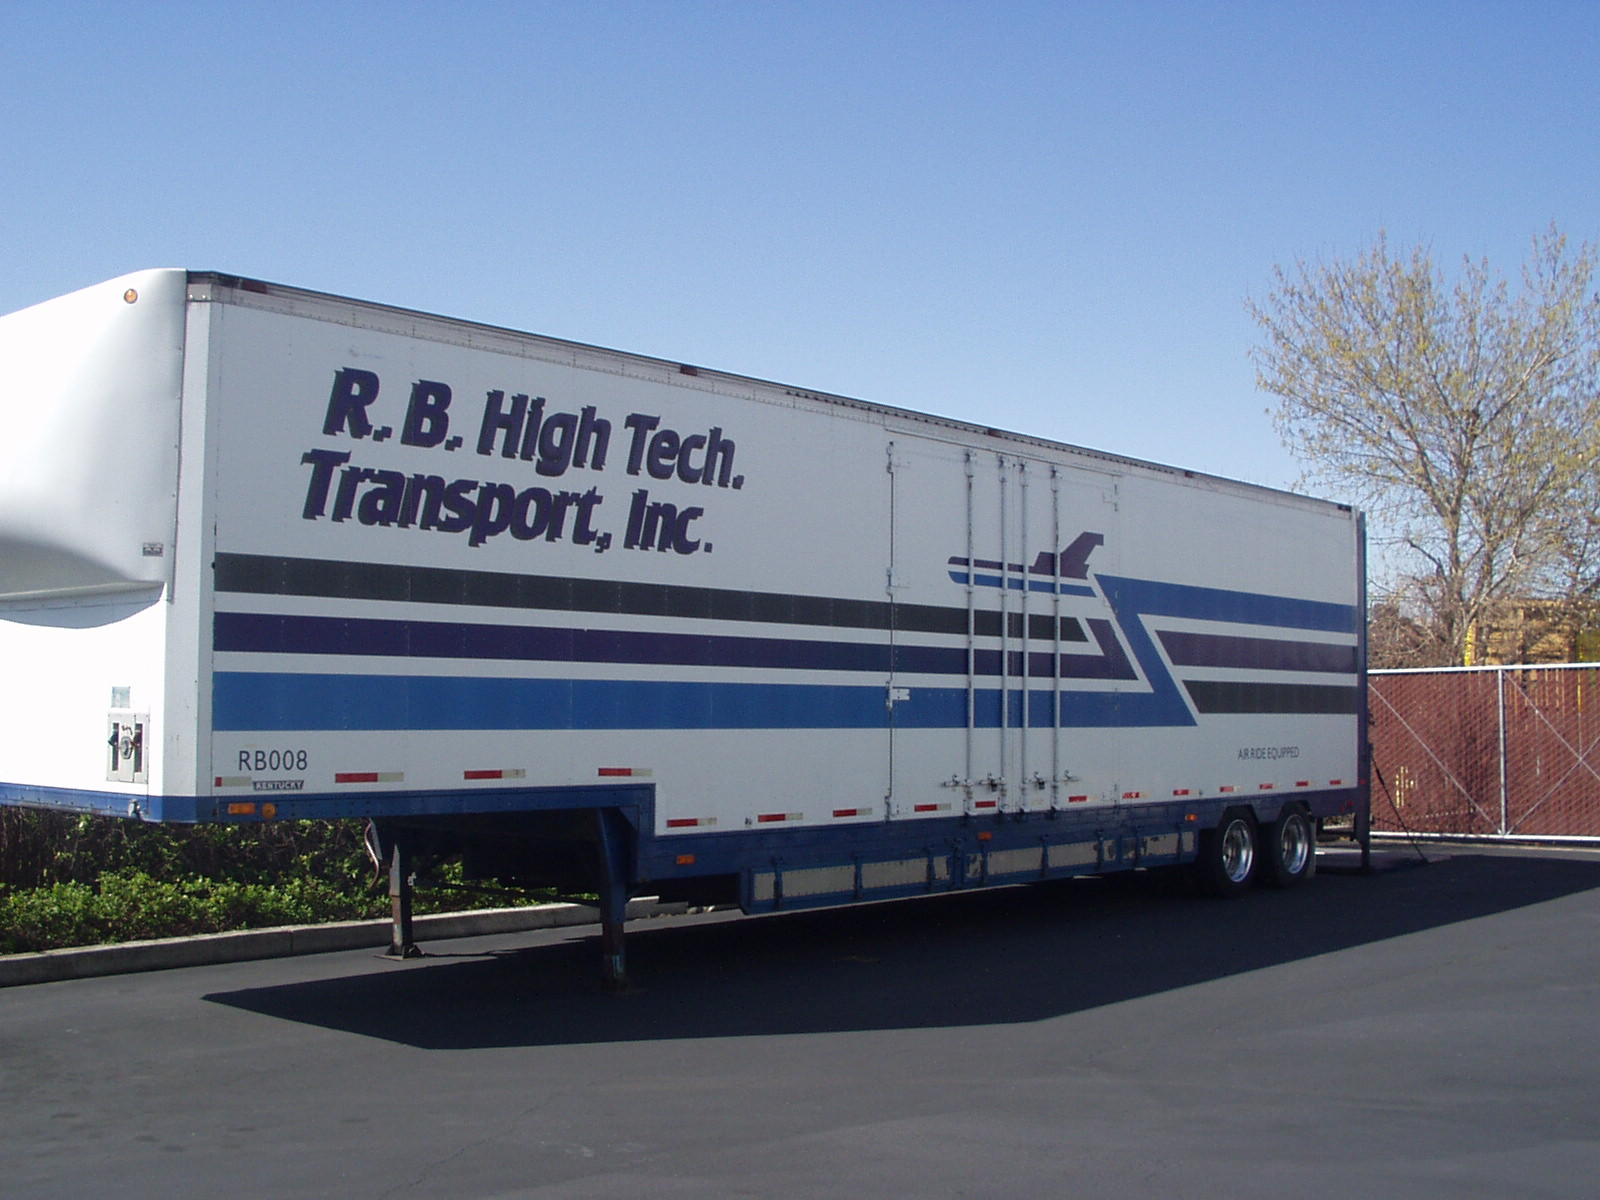 R B High Tech Transport Transport Trucking